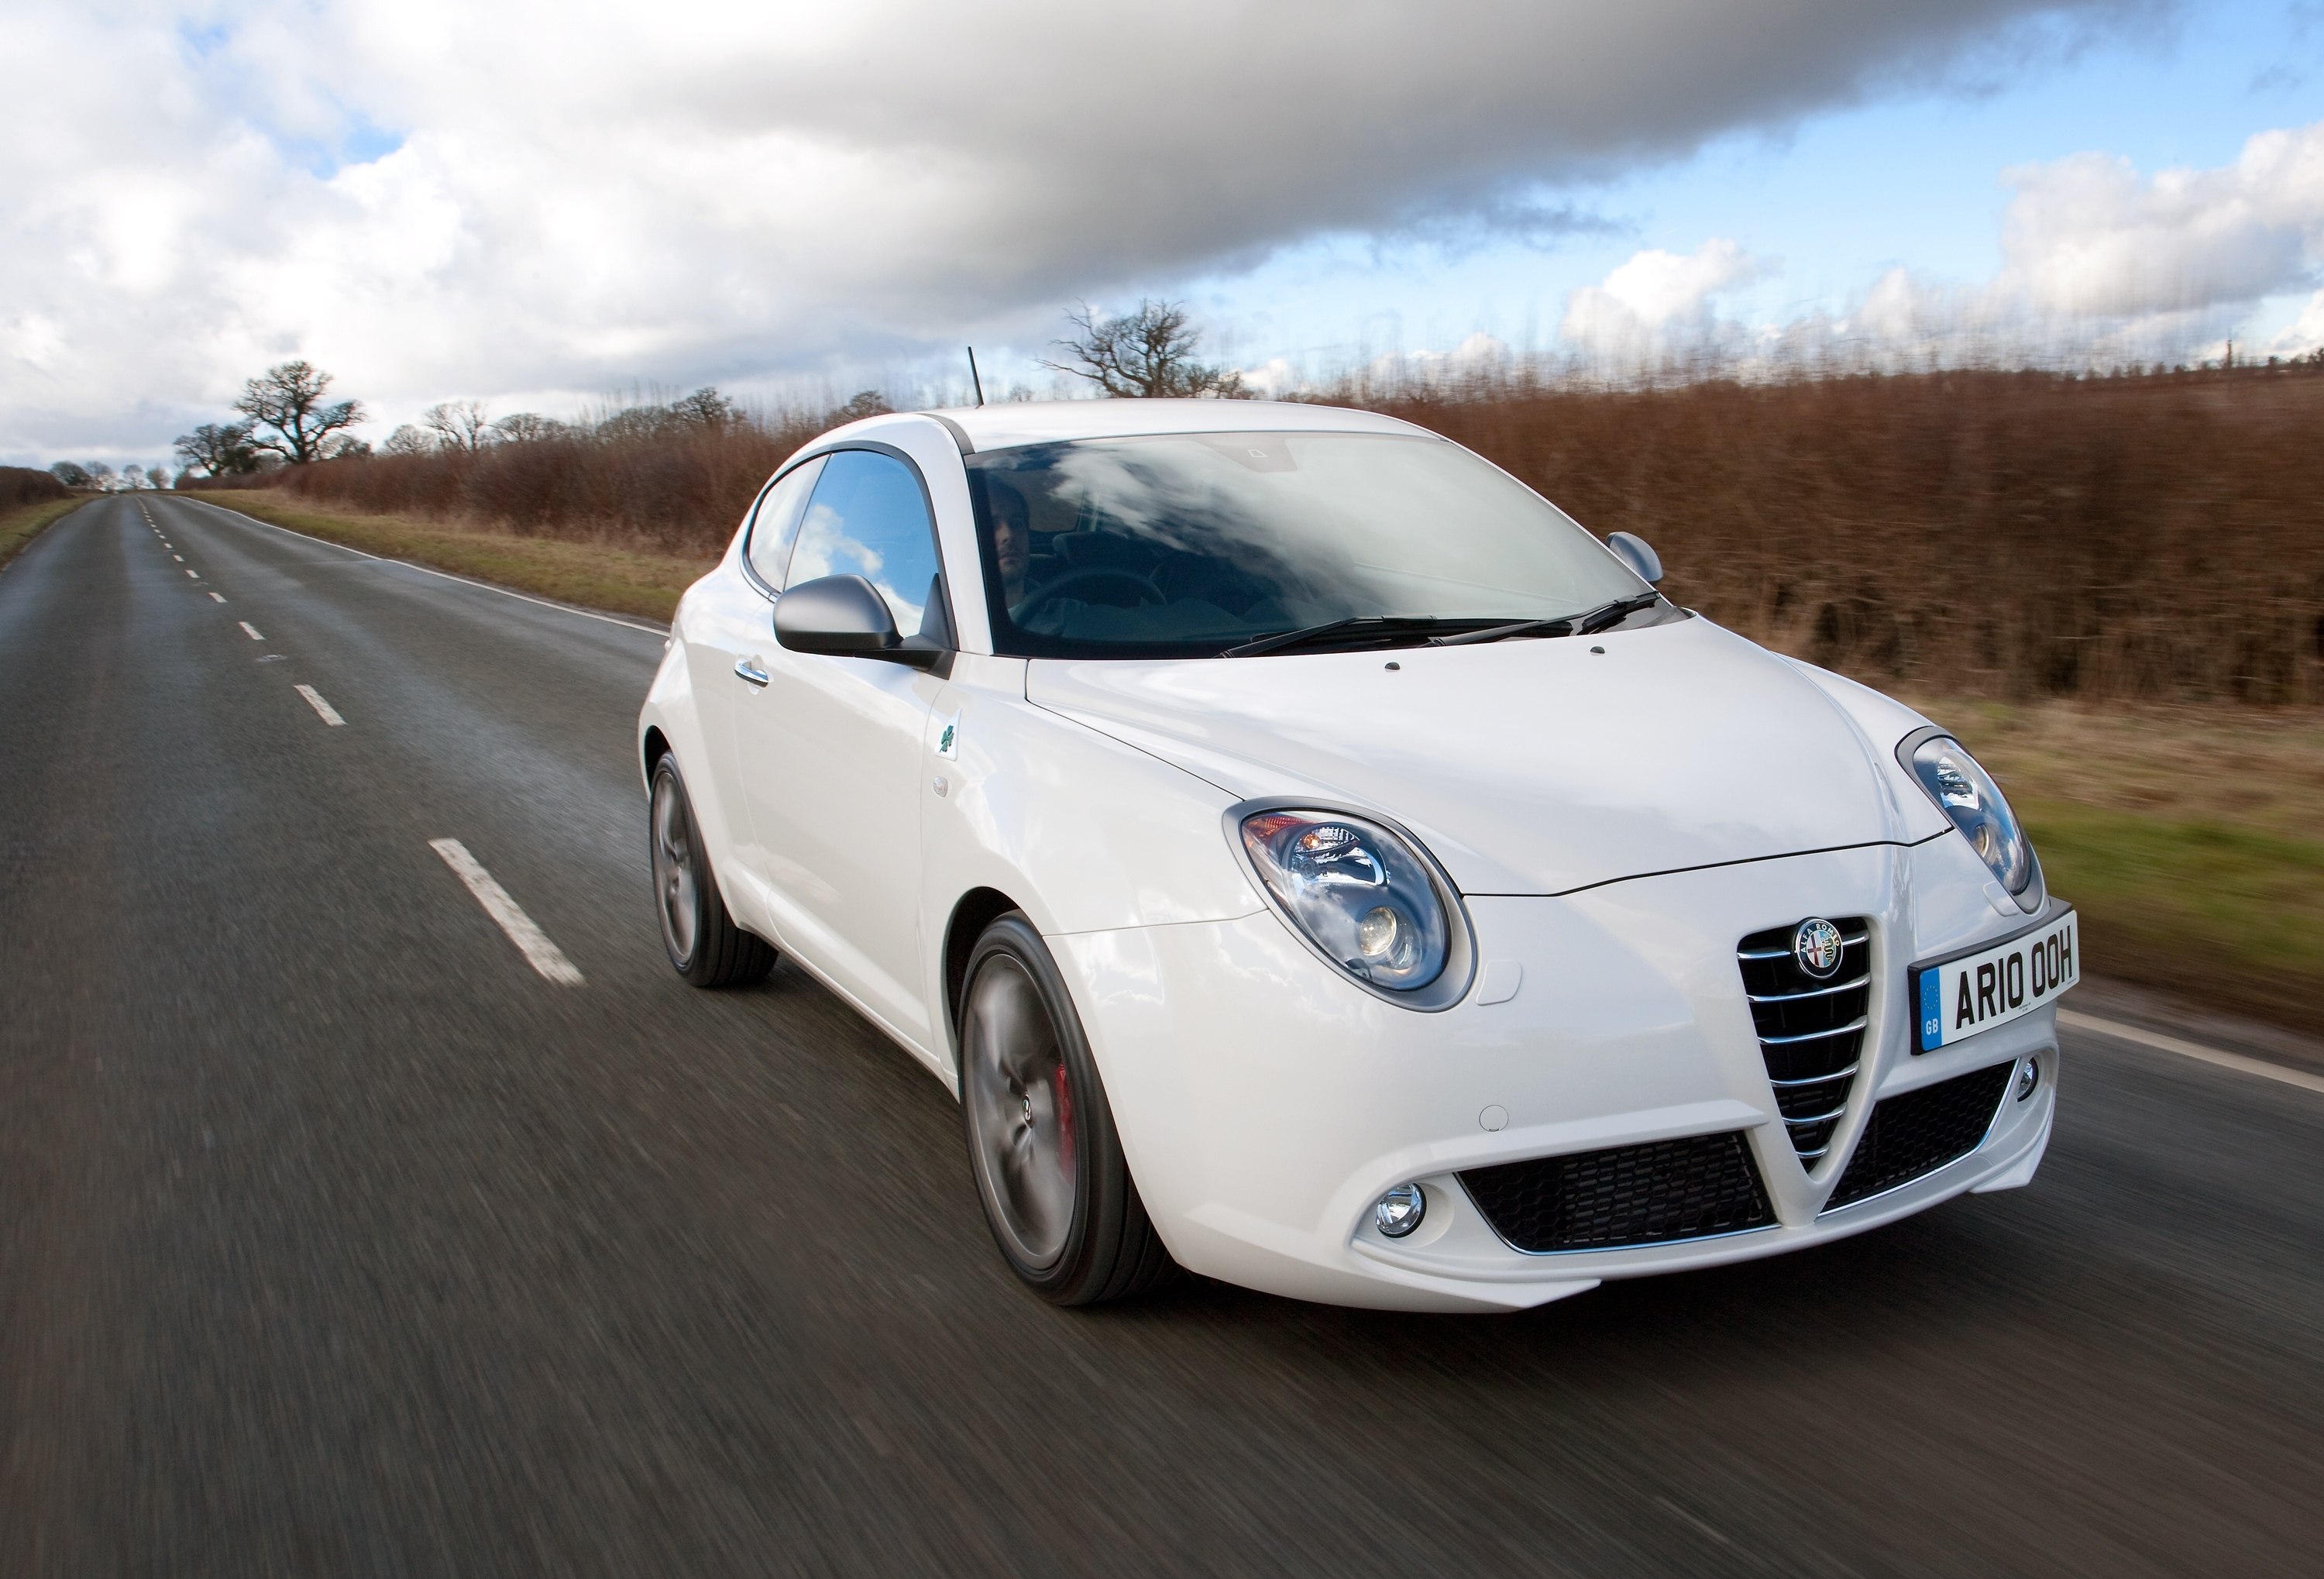 alfa romeo mito 1 4 tb multiair 135bhp distinctive car write ups. Black Bedroom Furniture Sets. Home Design Ideas